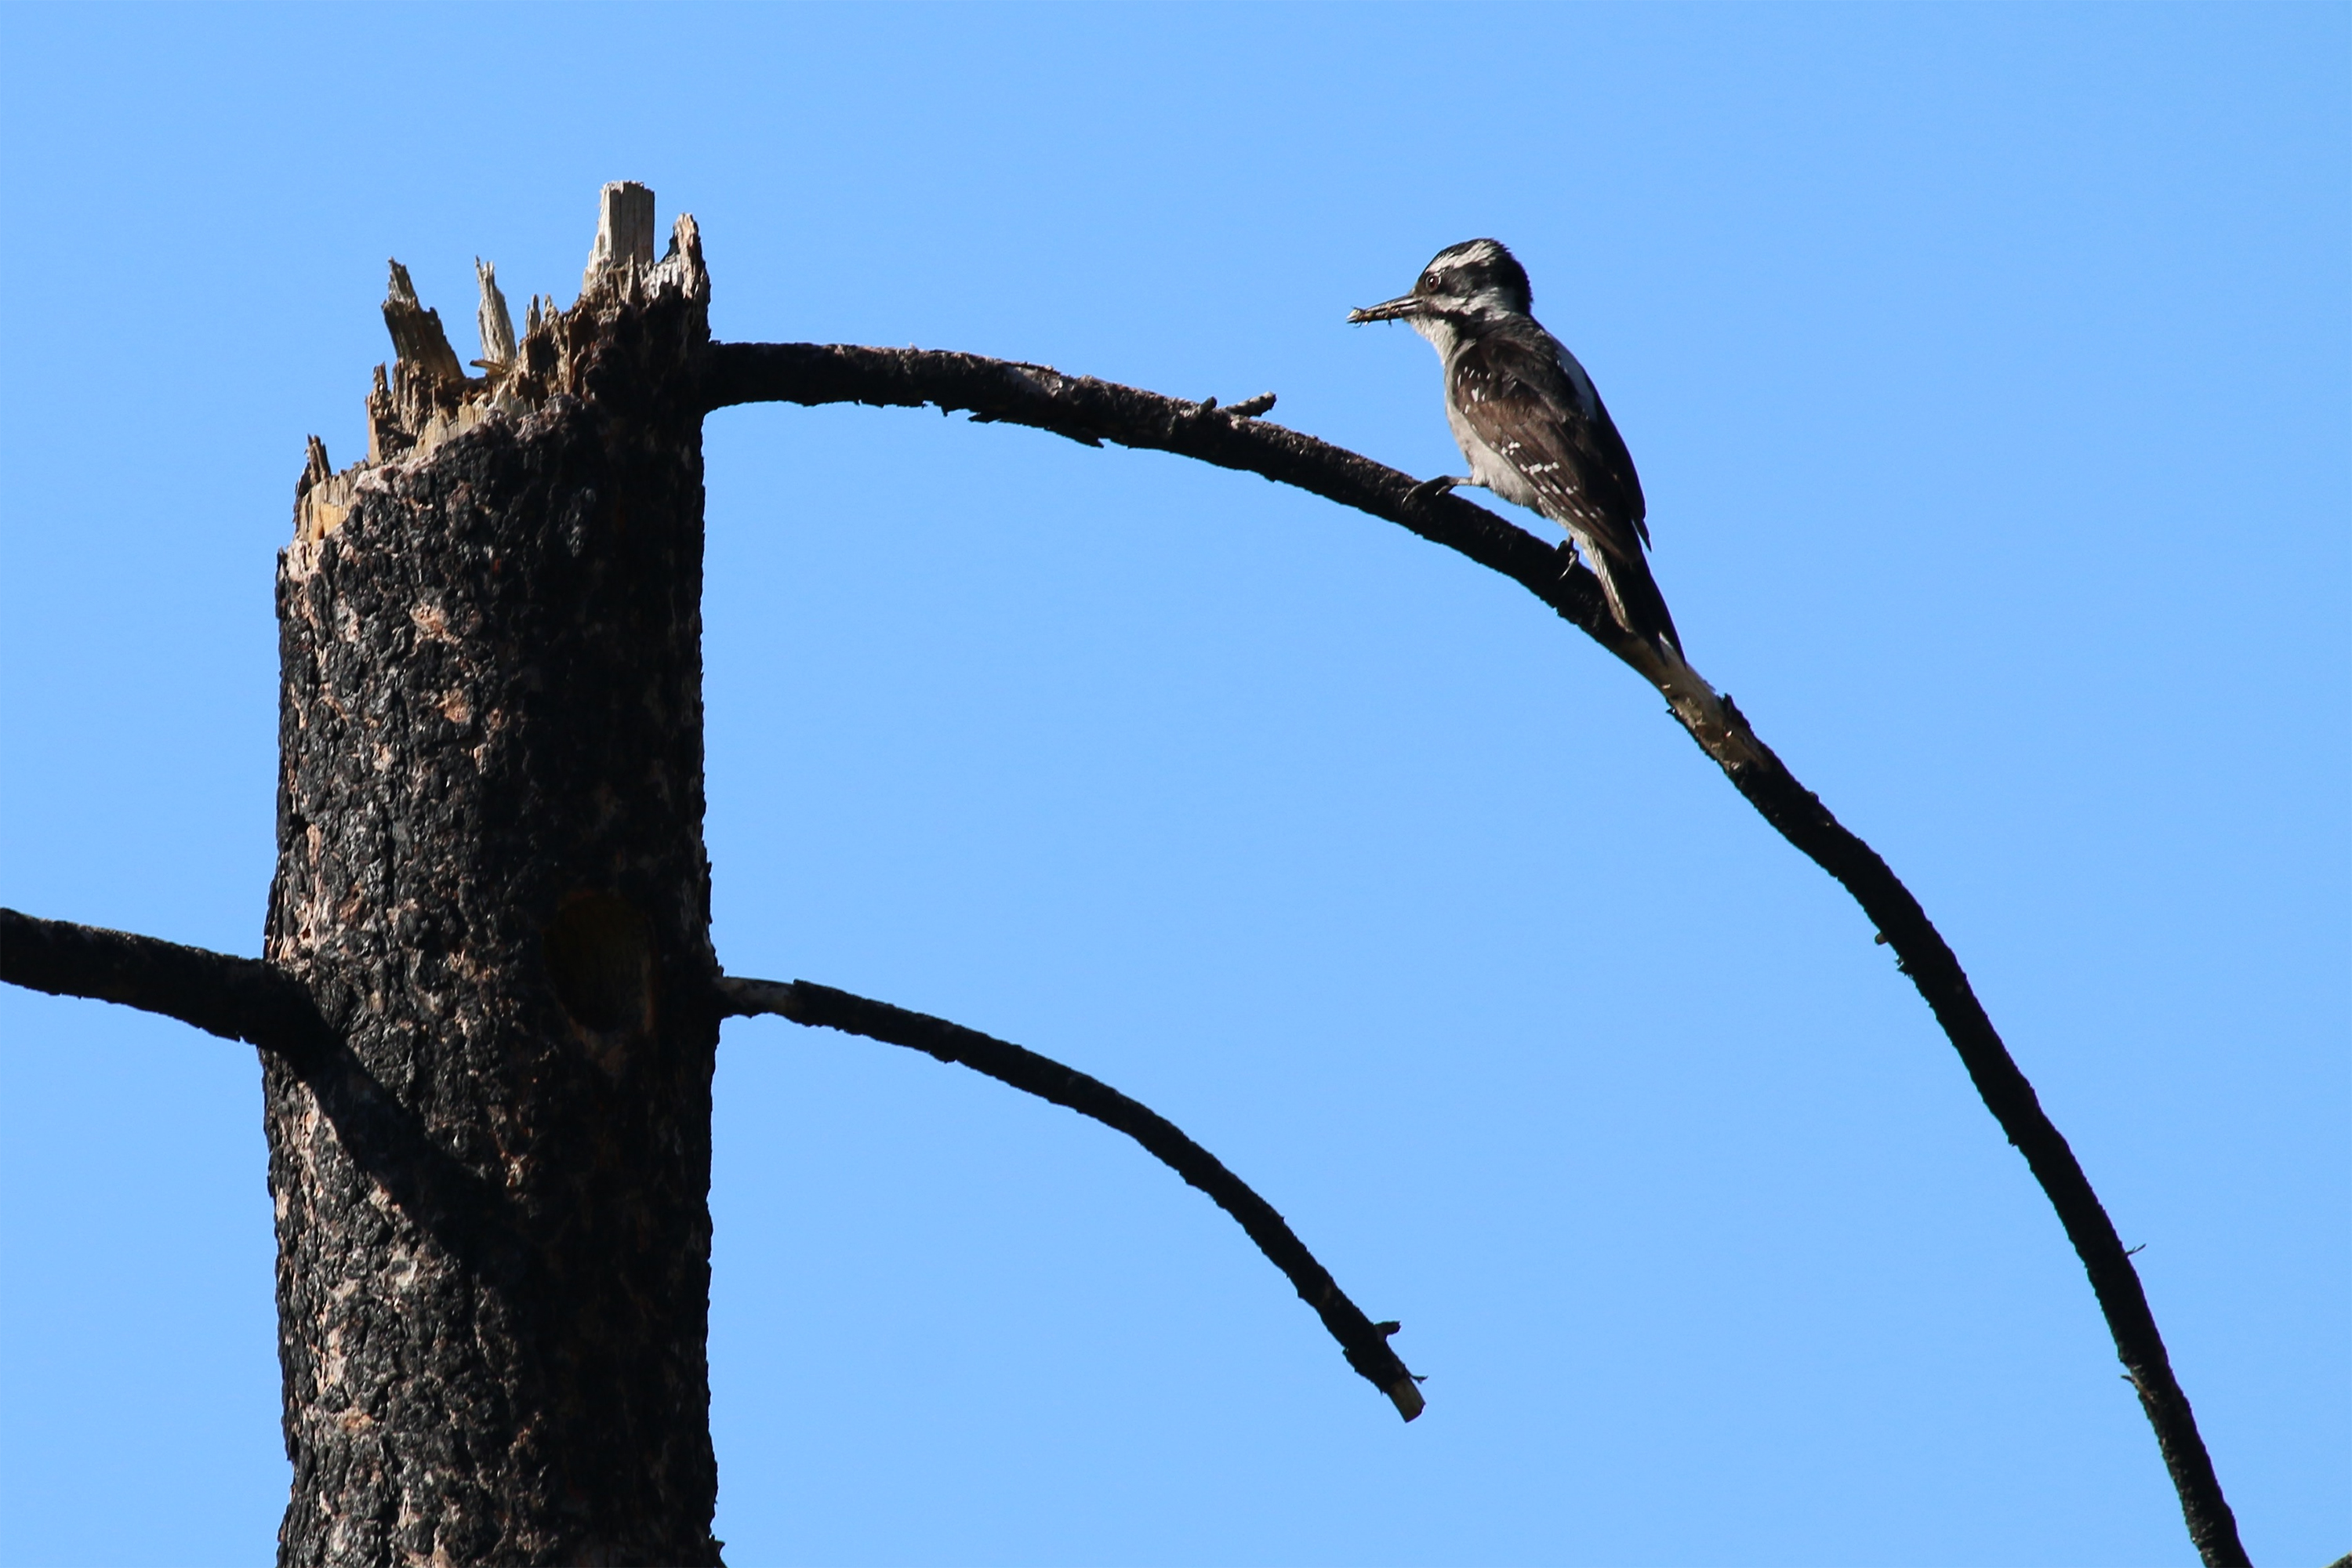 A Hairy Woodpecker returns to its nest site in a burned pine tree bringing food to its hungry young. (Photo courtesy of Morgan Tingley)